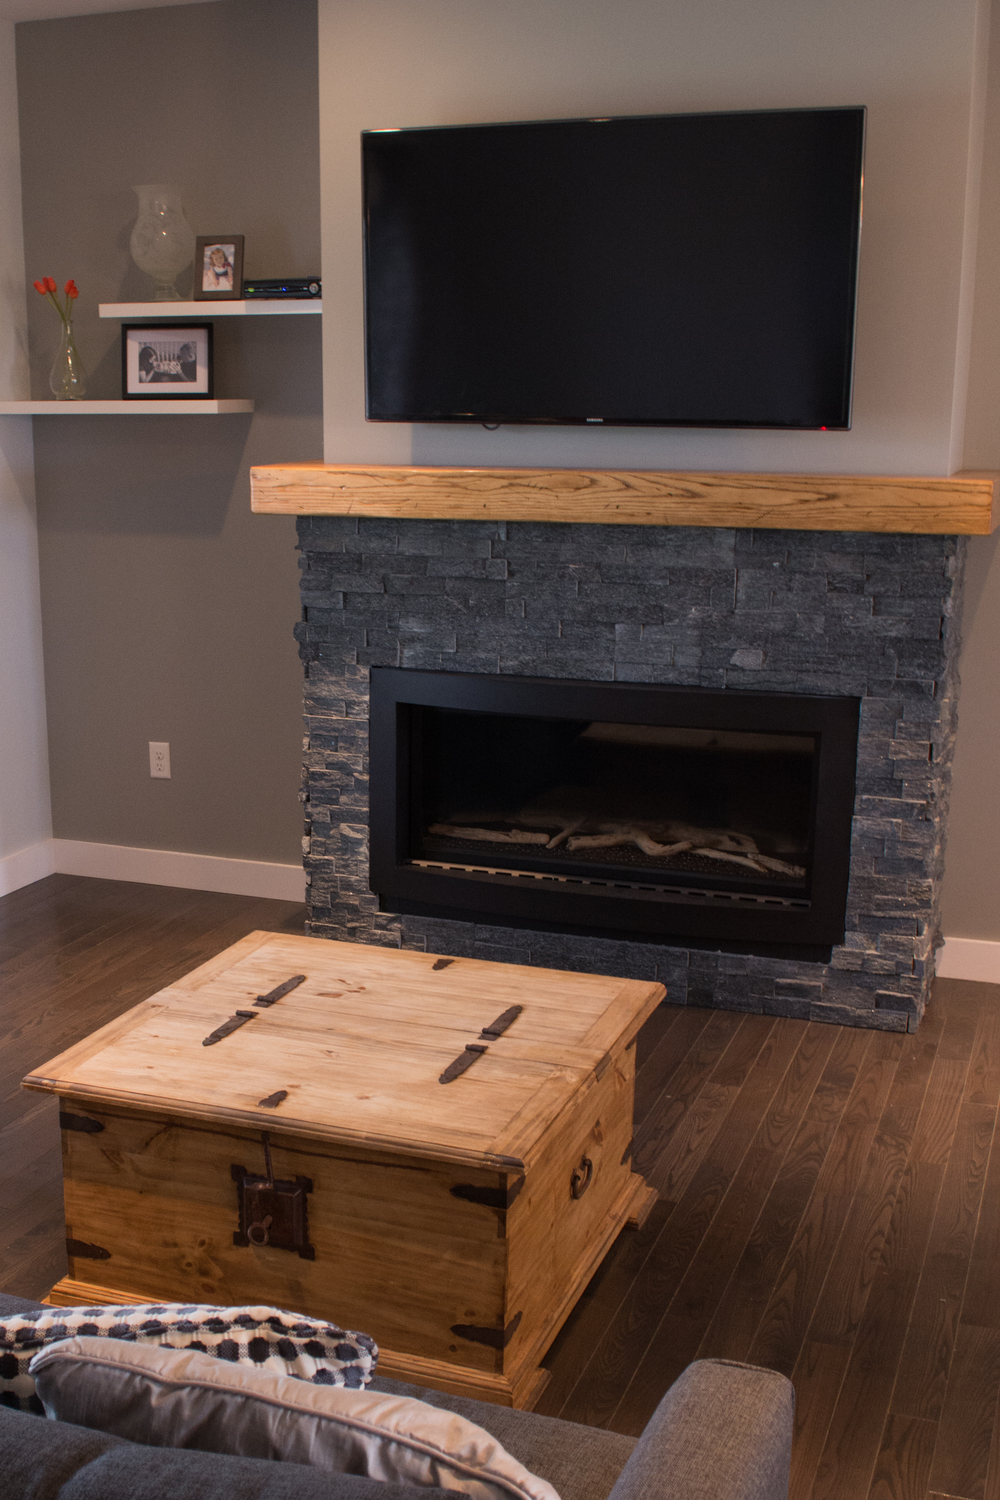 04Living Room - Fire Place.jpg